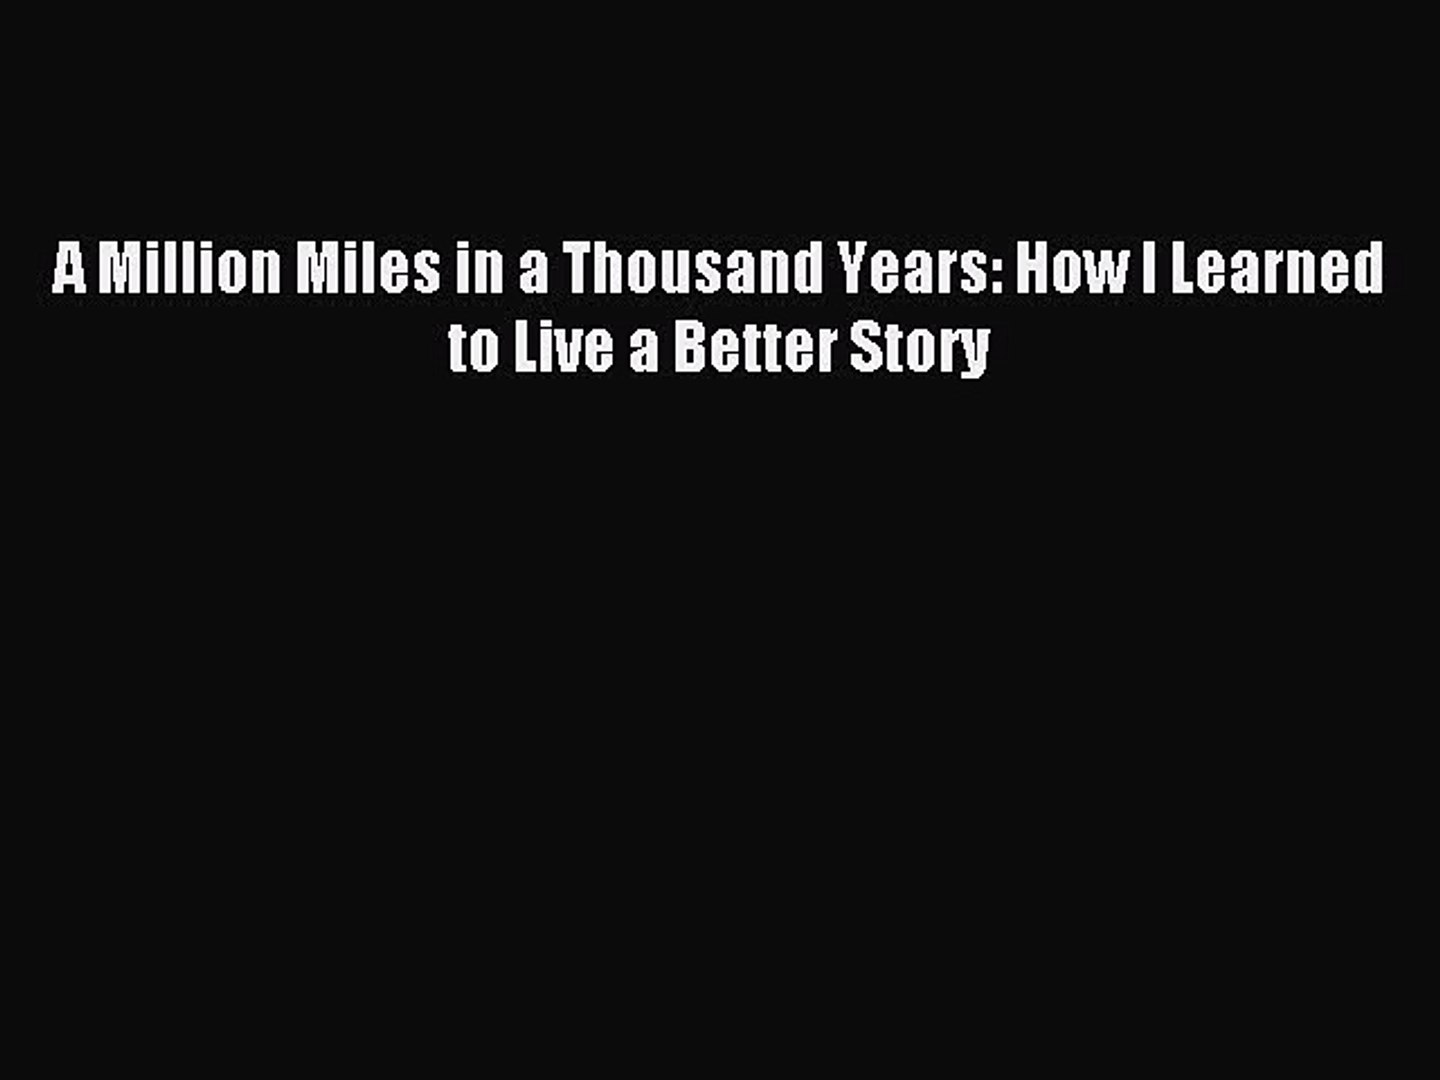 Read A Million Miles in a Thousand Years: How I Learned to Live a Better Story Ebook Online